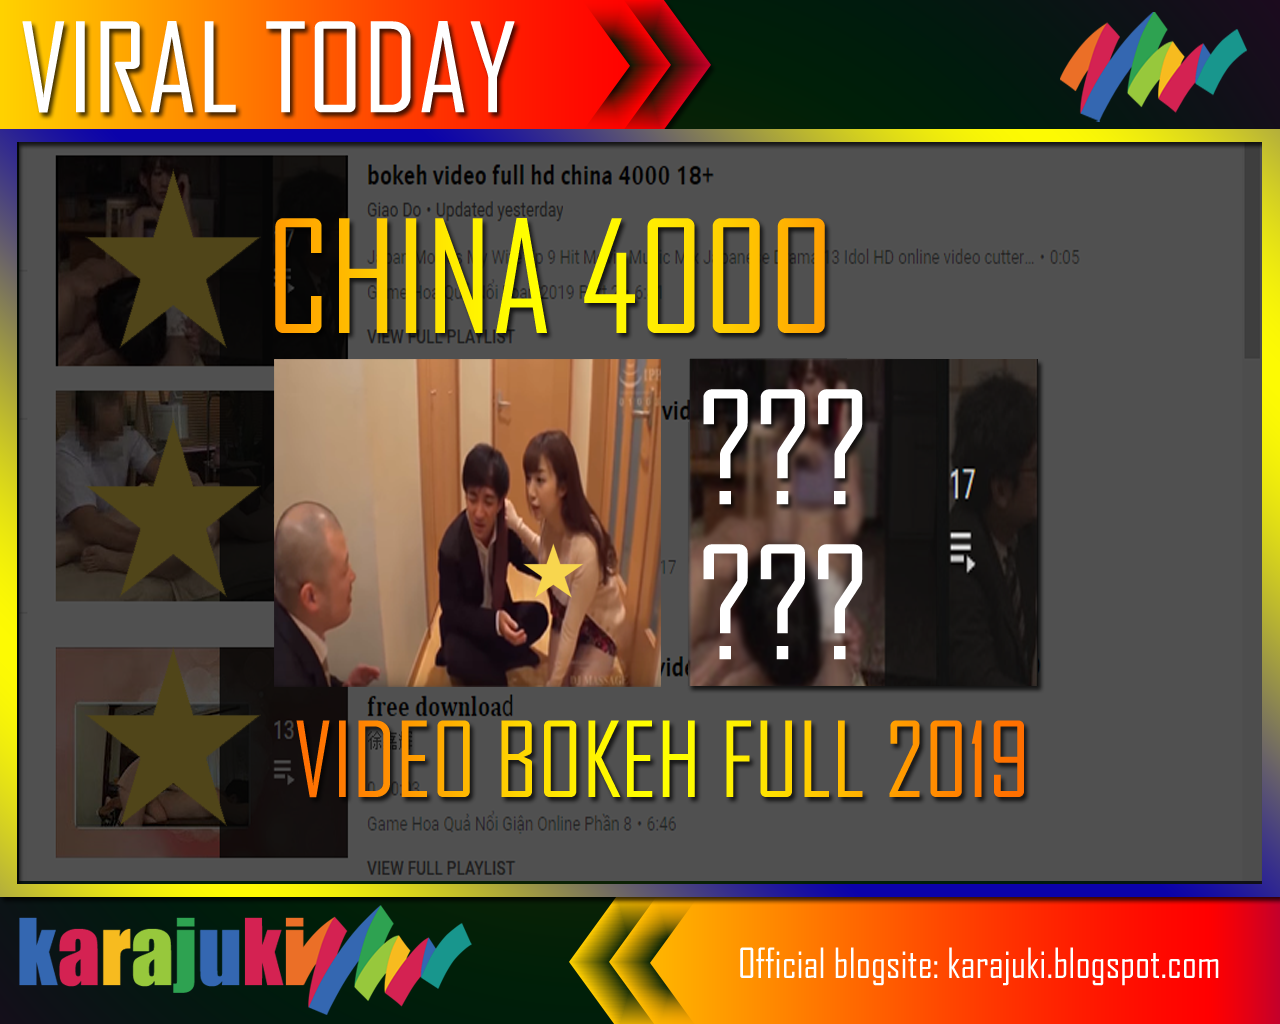 The Latest Video Bokeh Full 2019 China 4000 - KARAJUKI